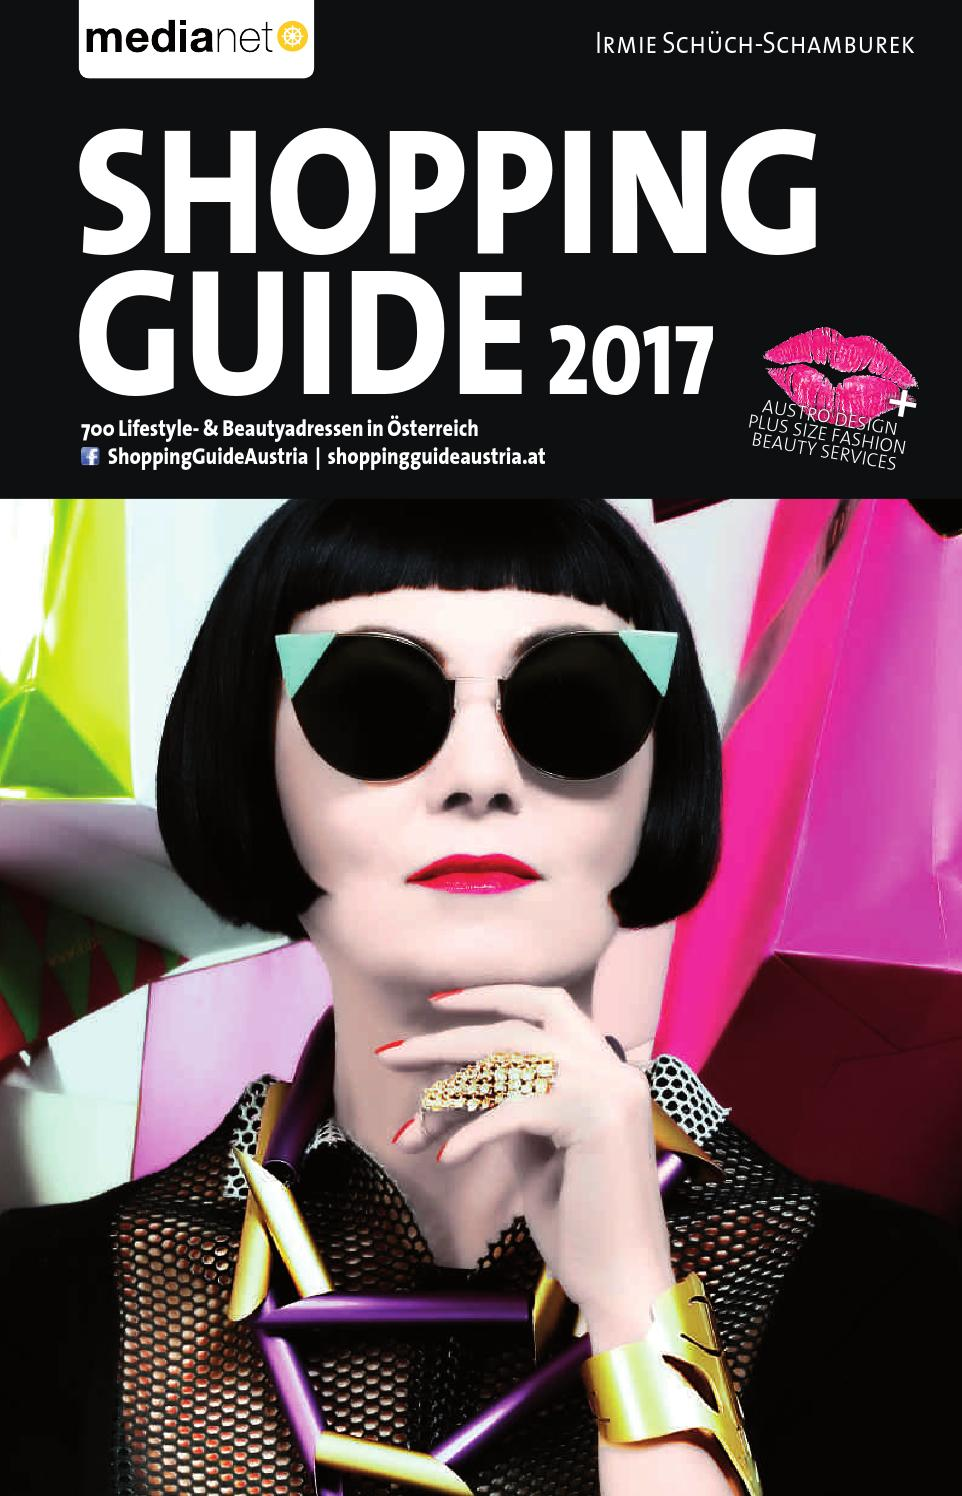 Shopping Guide 2017